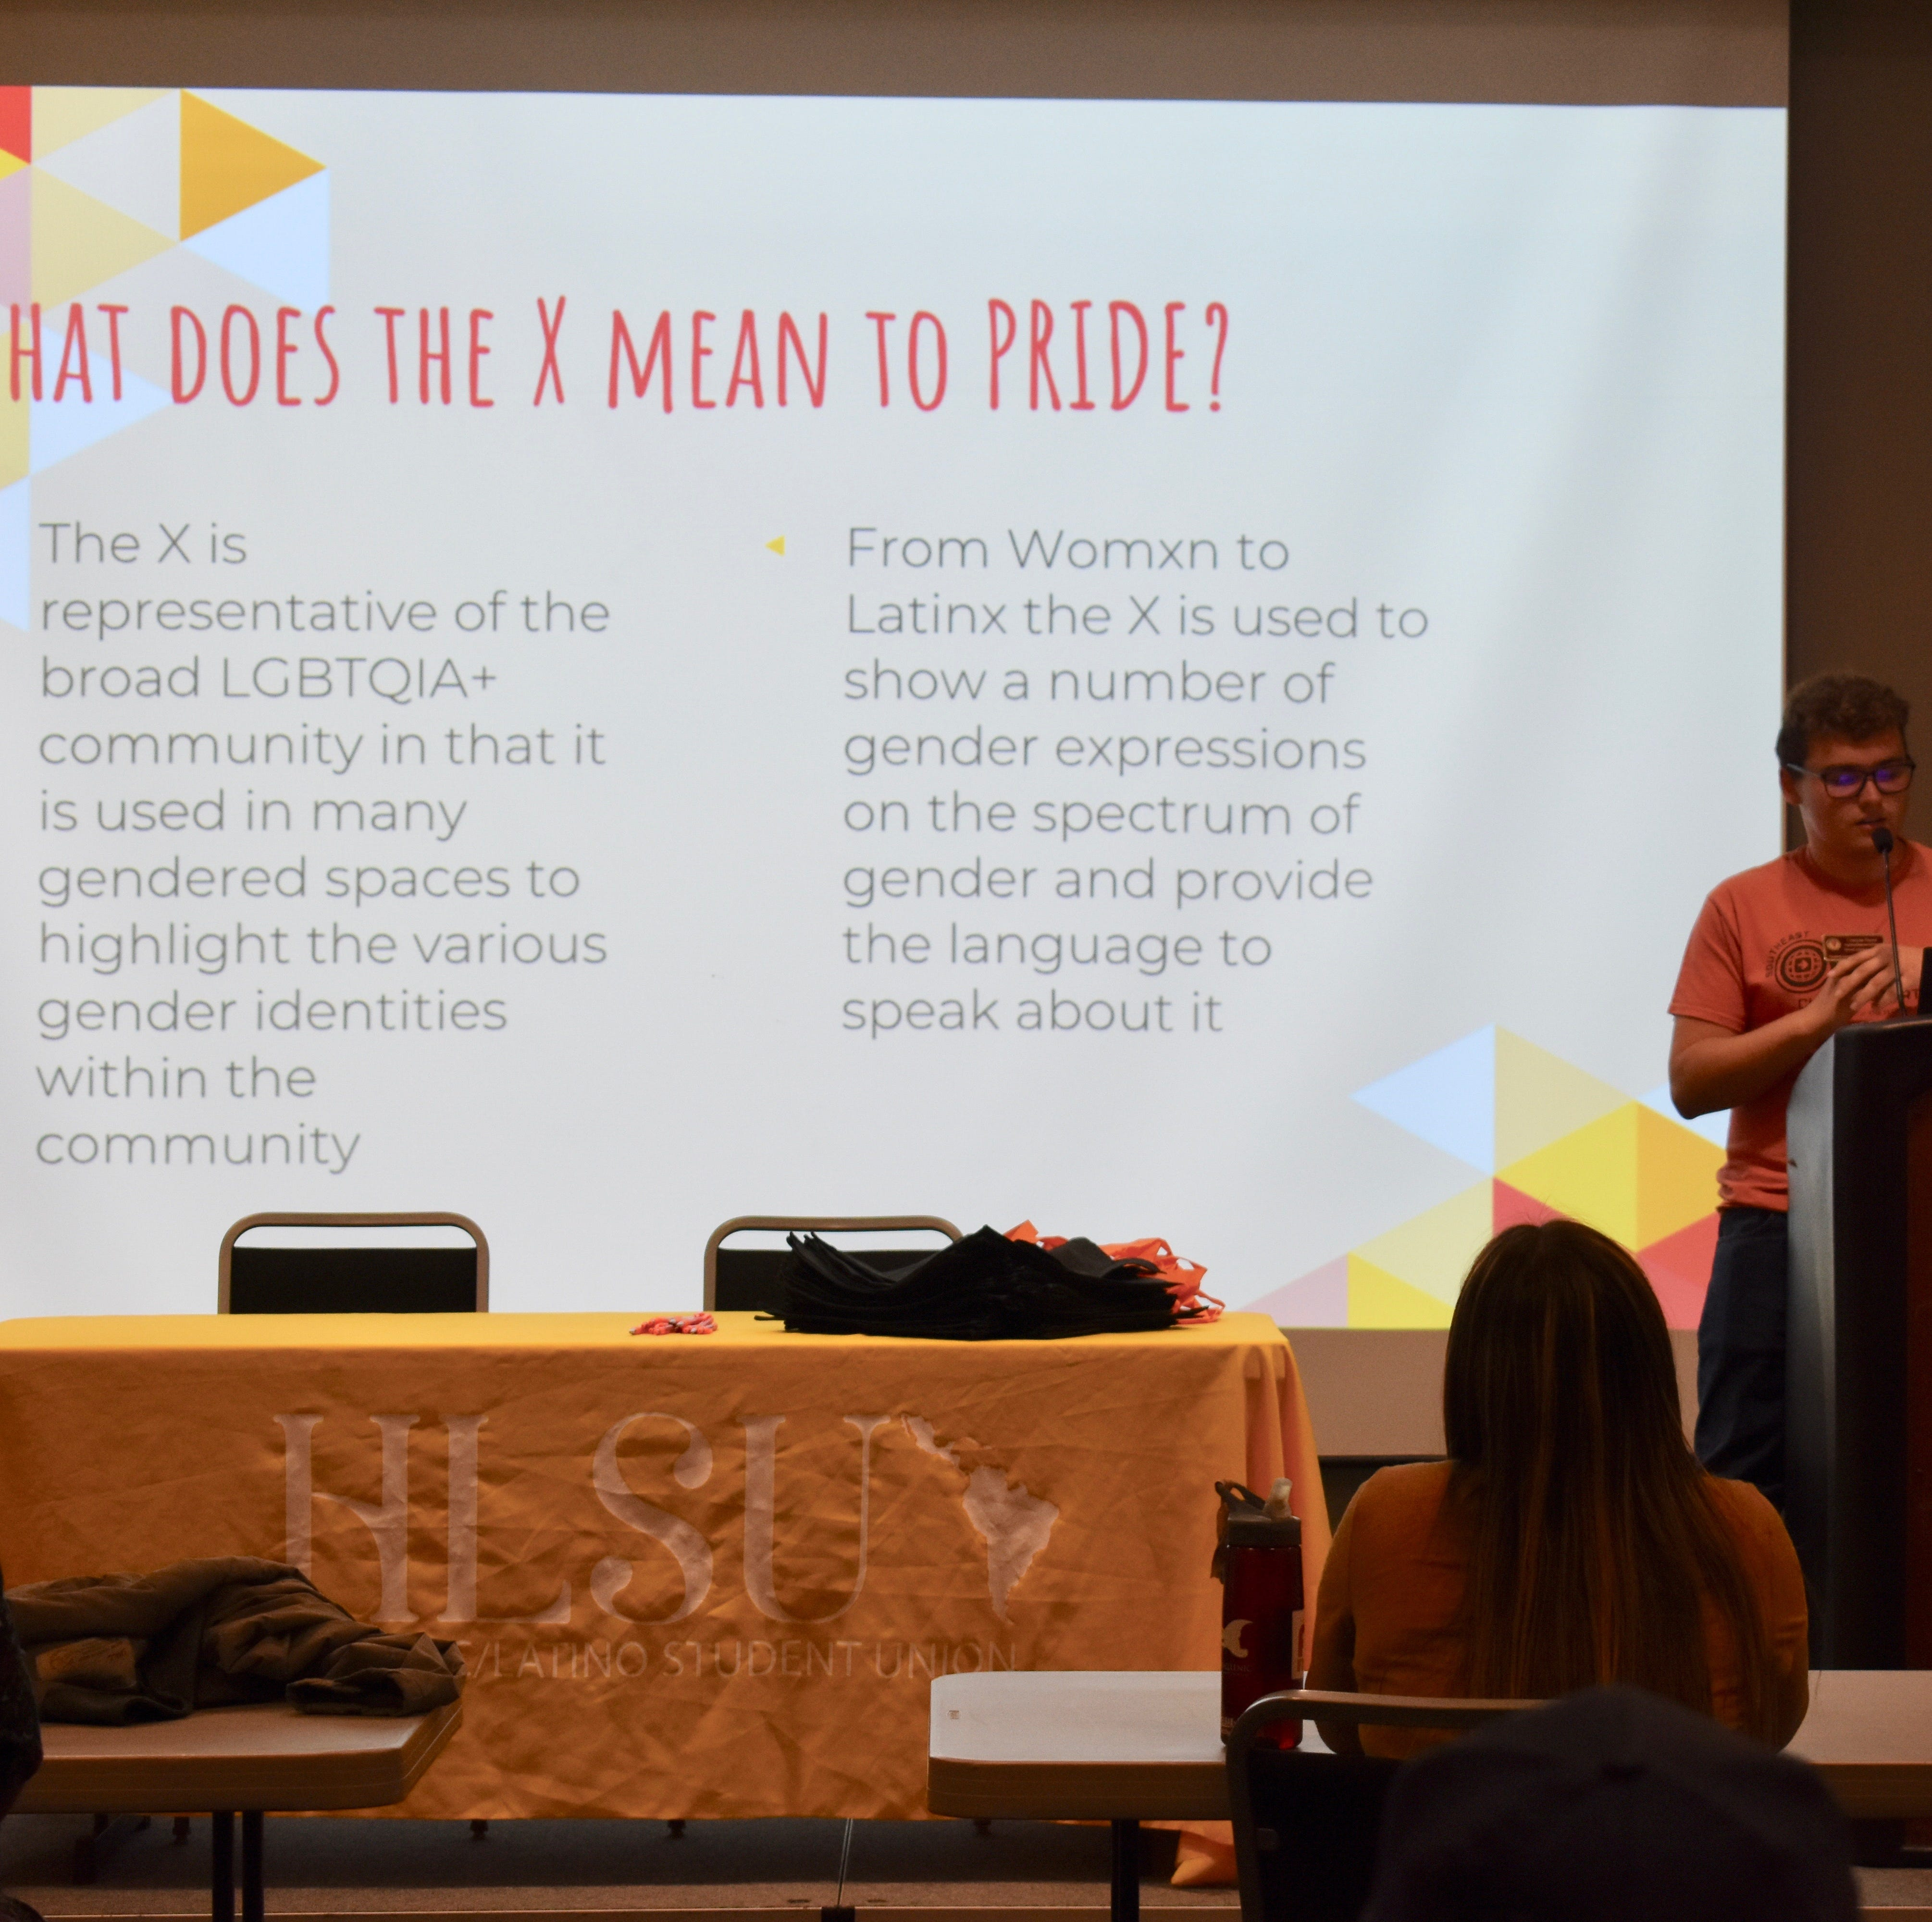 Students explore what the term 'Latinx' means for gender inclusivity